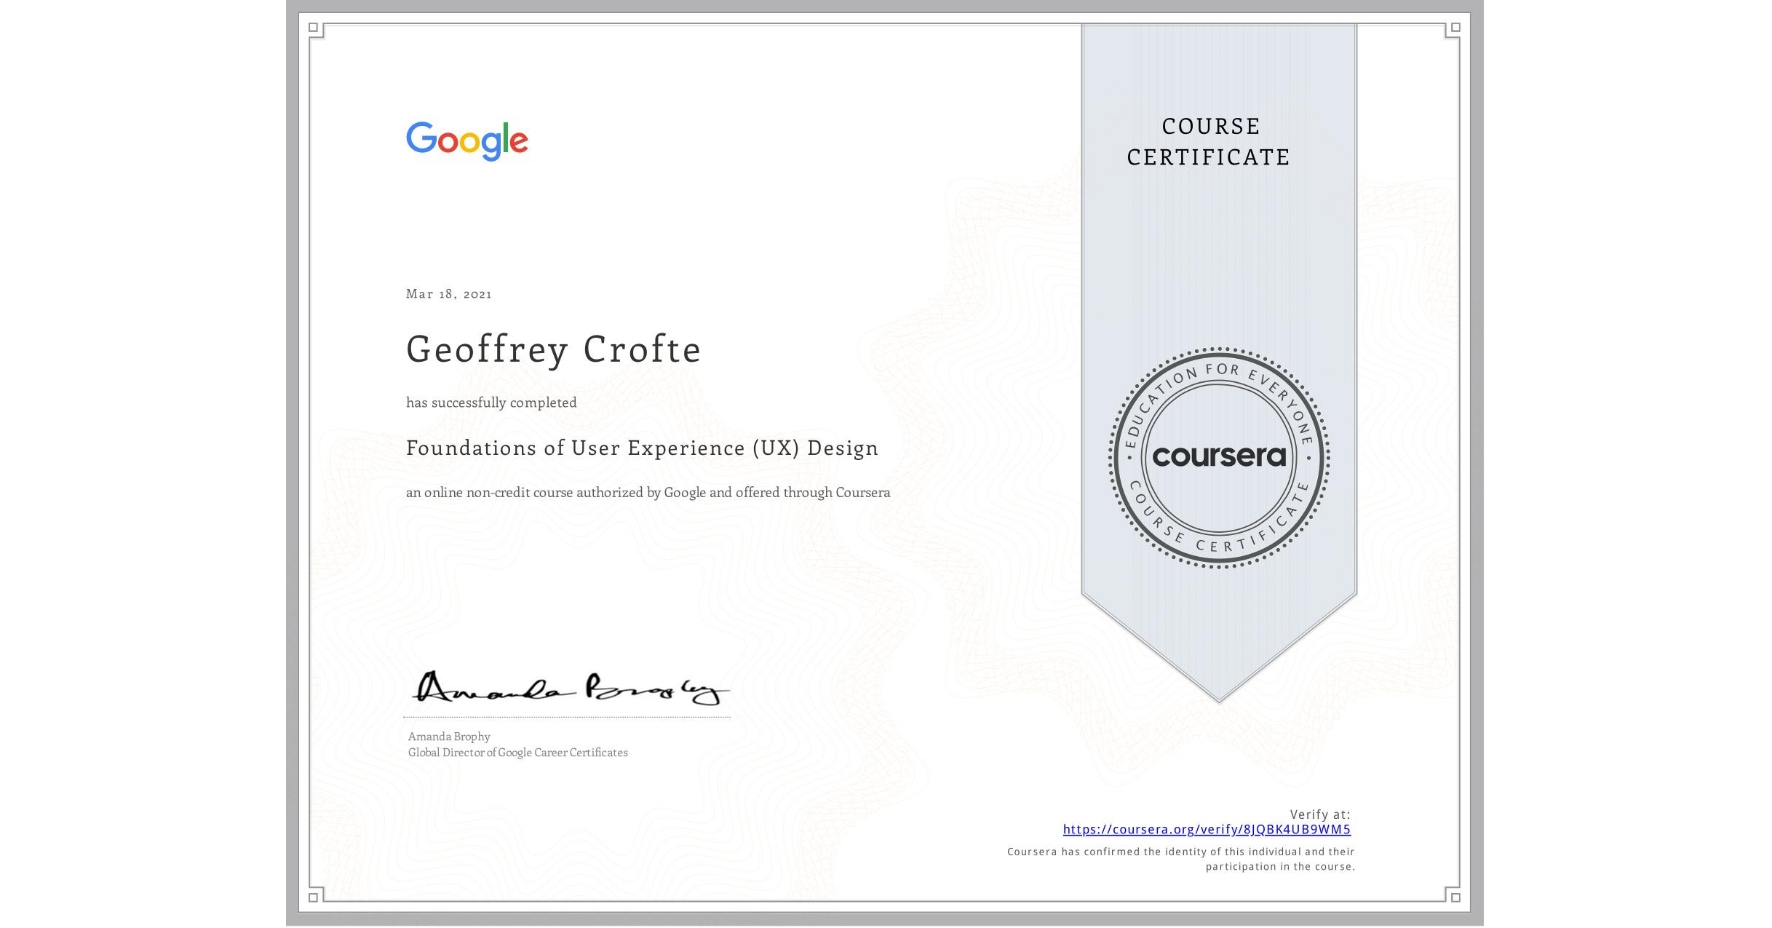 View certificate for Geoffrey Crofte, Foundations of User Experience (UX) Design, an online non-credit course authorized by Google and offered through Coursera